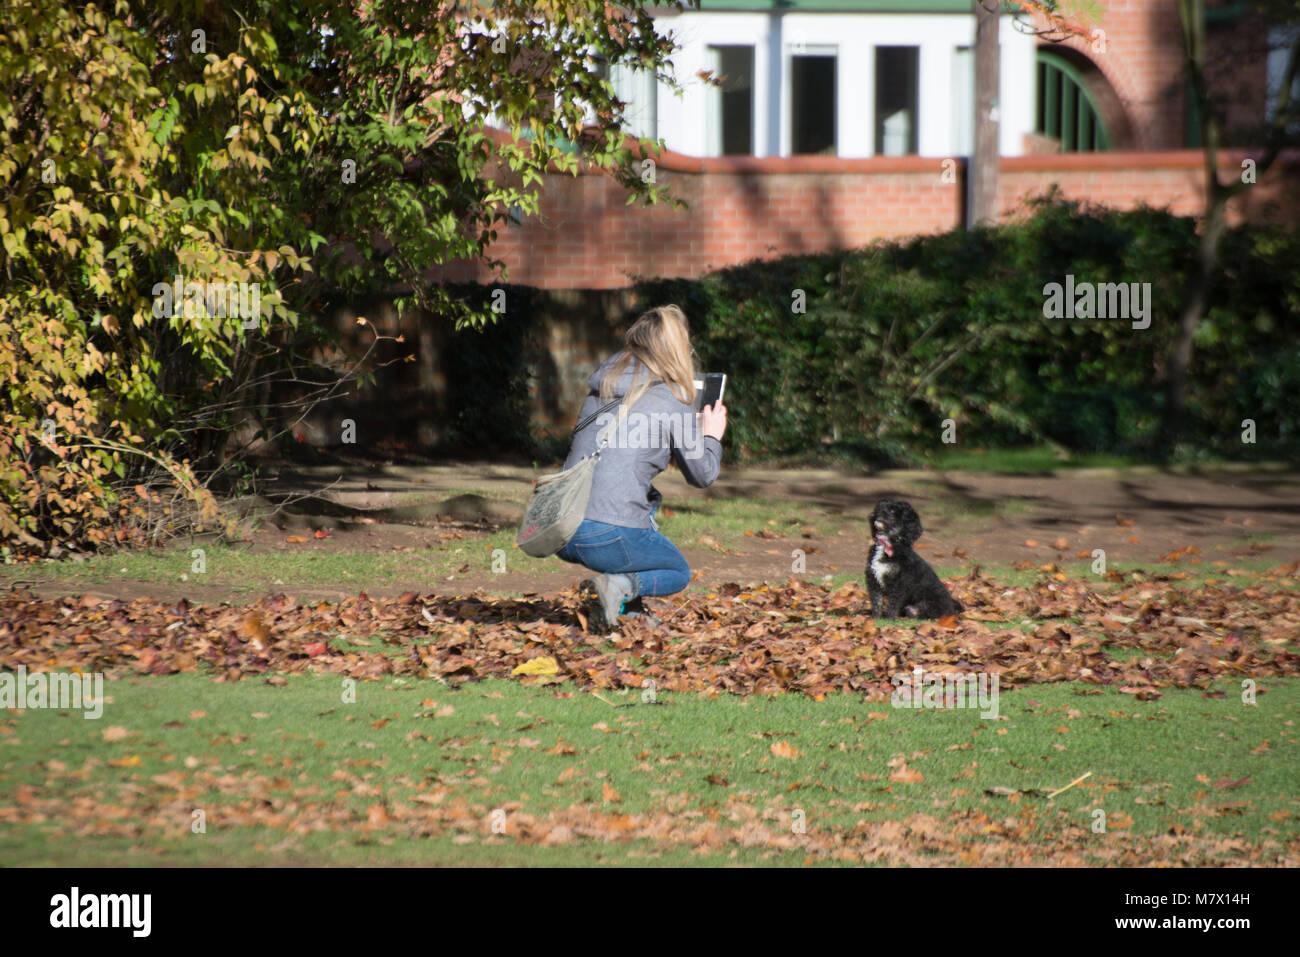 woman takes picture of obedient dog on autumn leaves - Stock Image